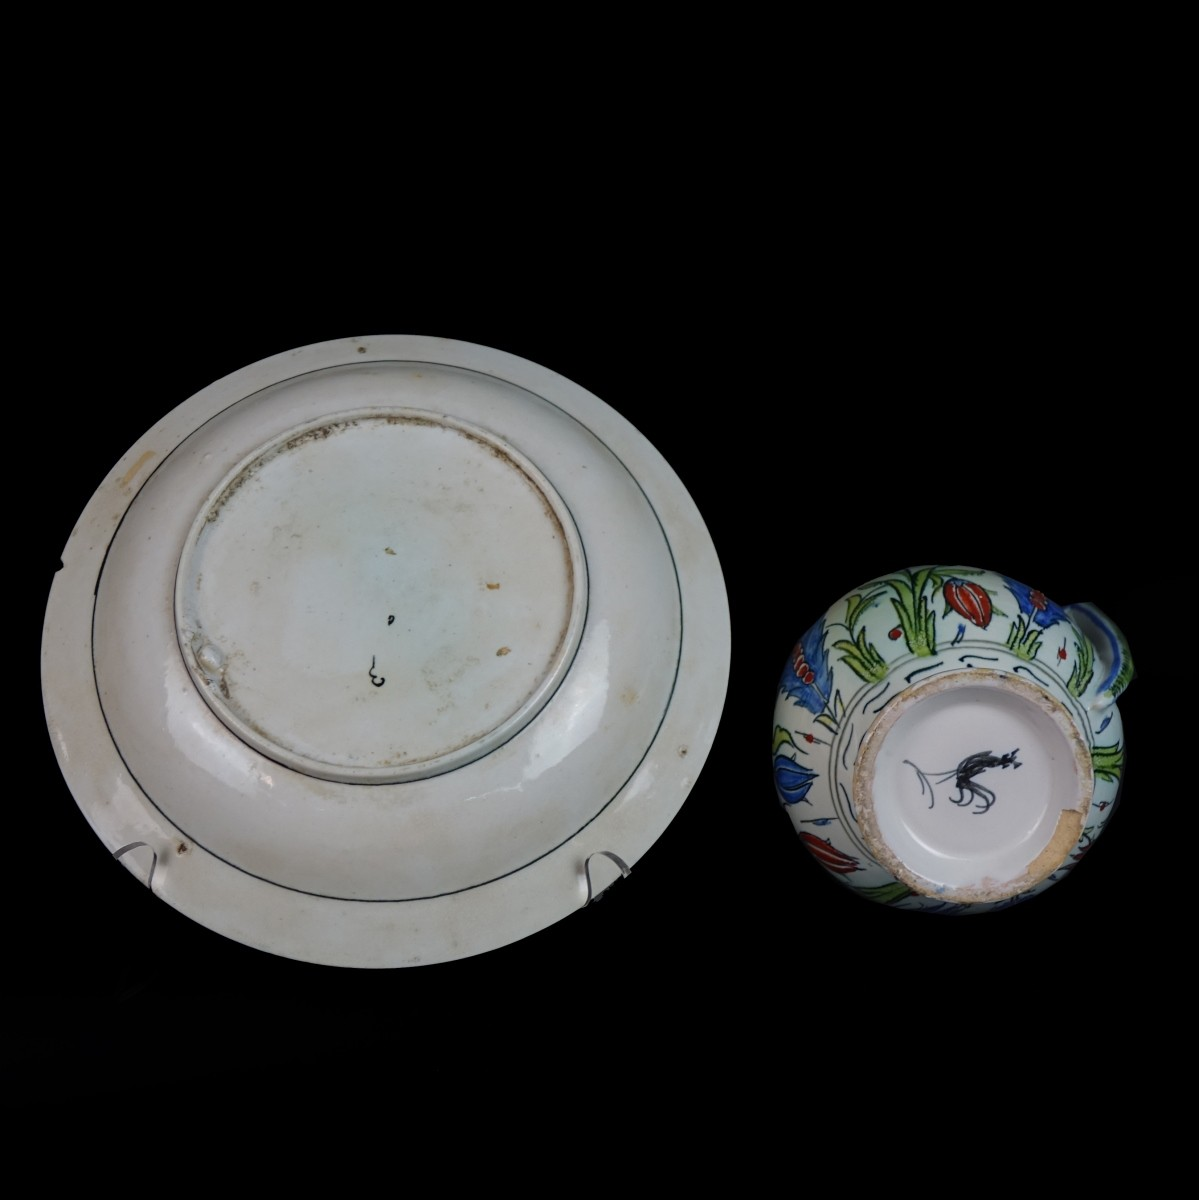 Two (2) Vintage Ottoman Empire Style Tableware